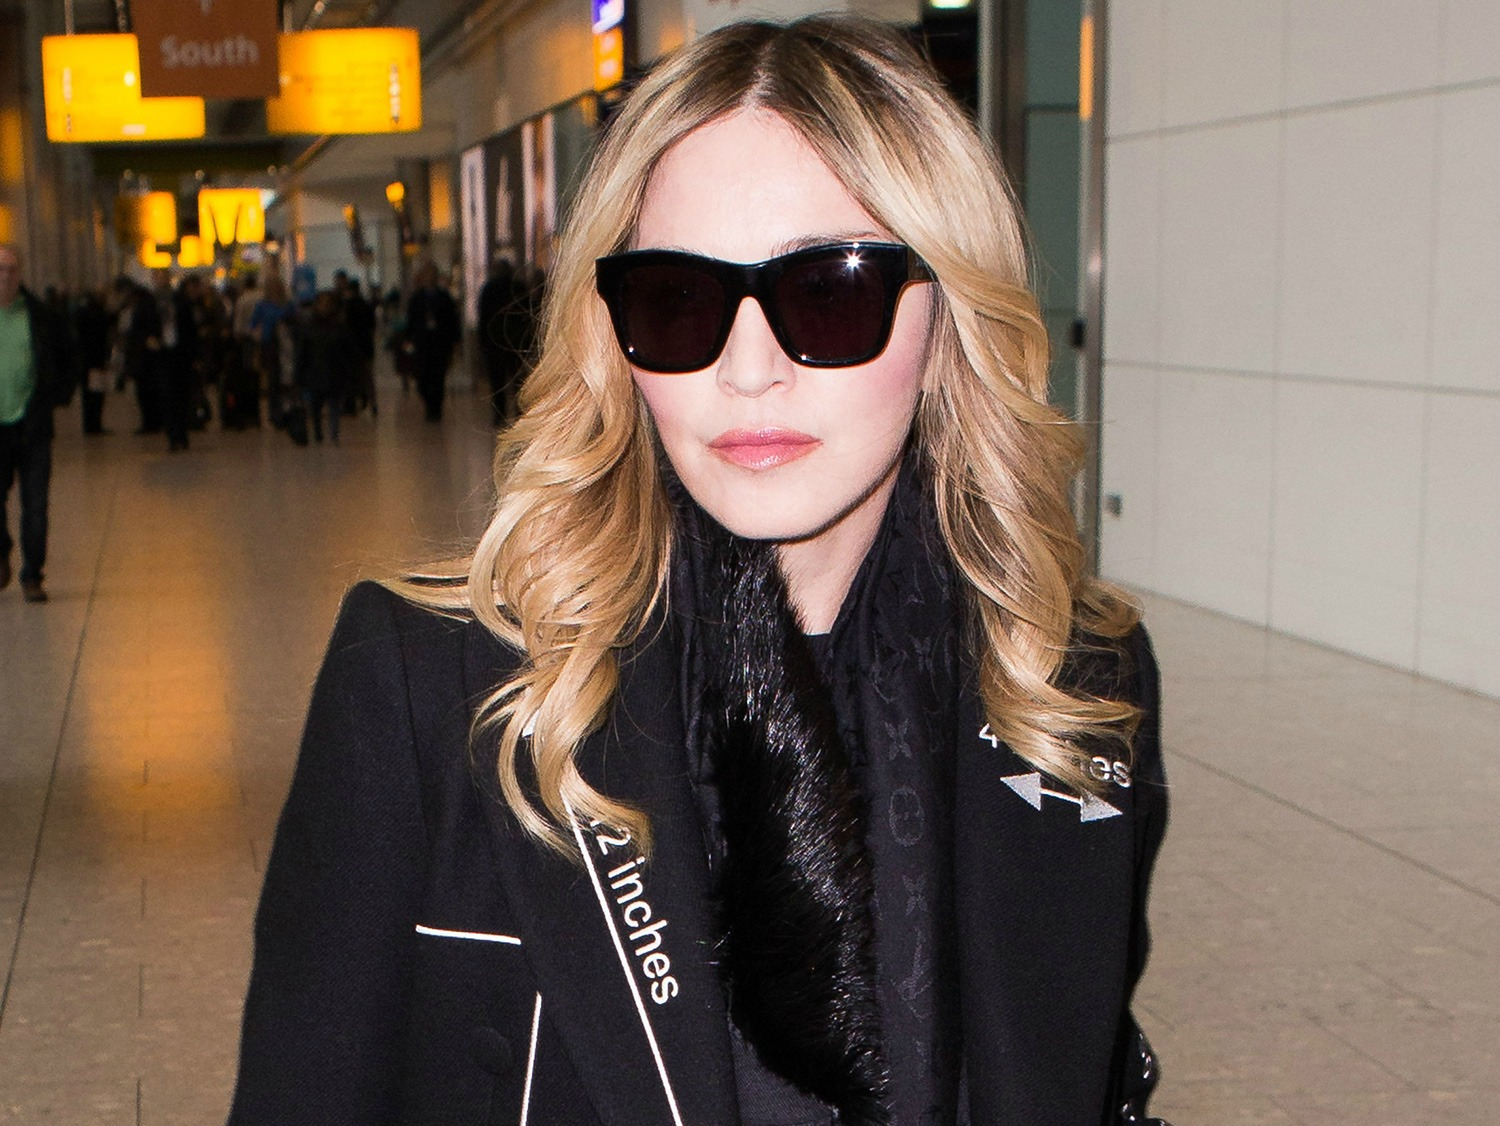 MADONNA FLIES IN TO LONDON TO SMOOTH RIFT WITH ROCCO